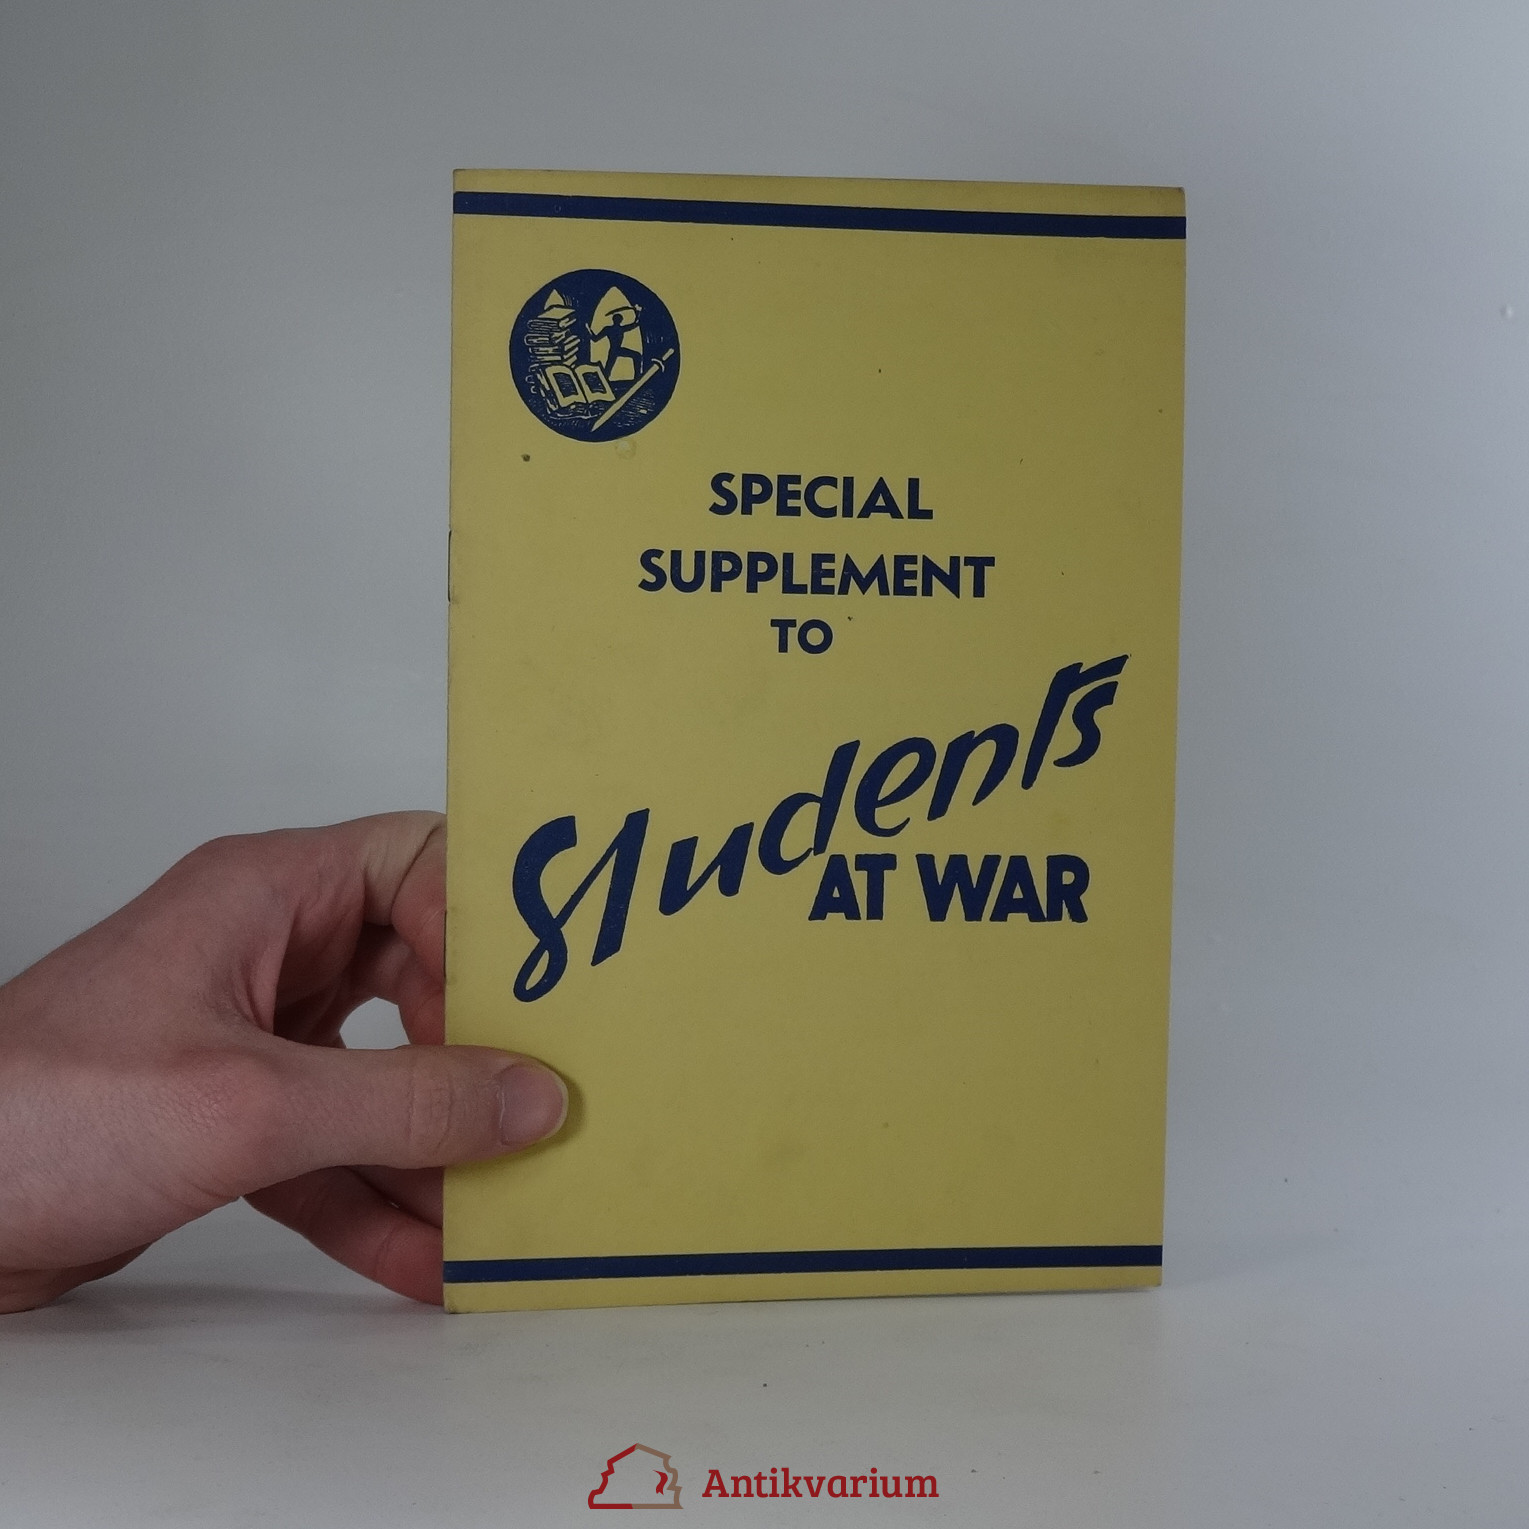 antikvární kniha Special Supplement to Students at War, 1945